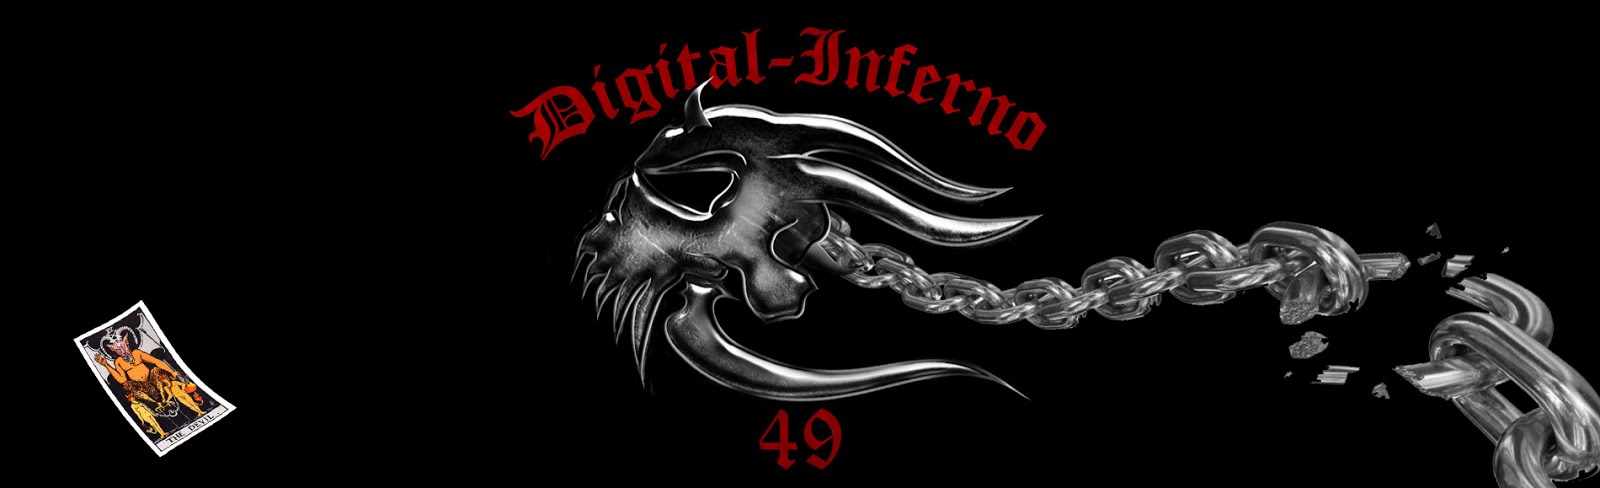 DIGITAL-INFERNO XV